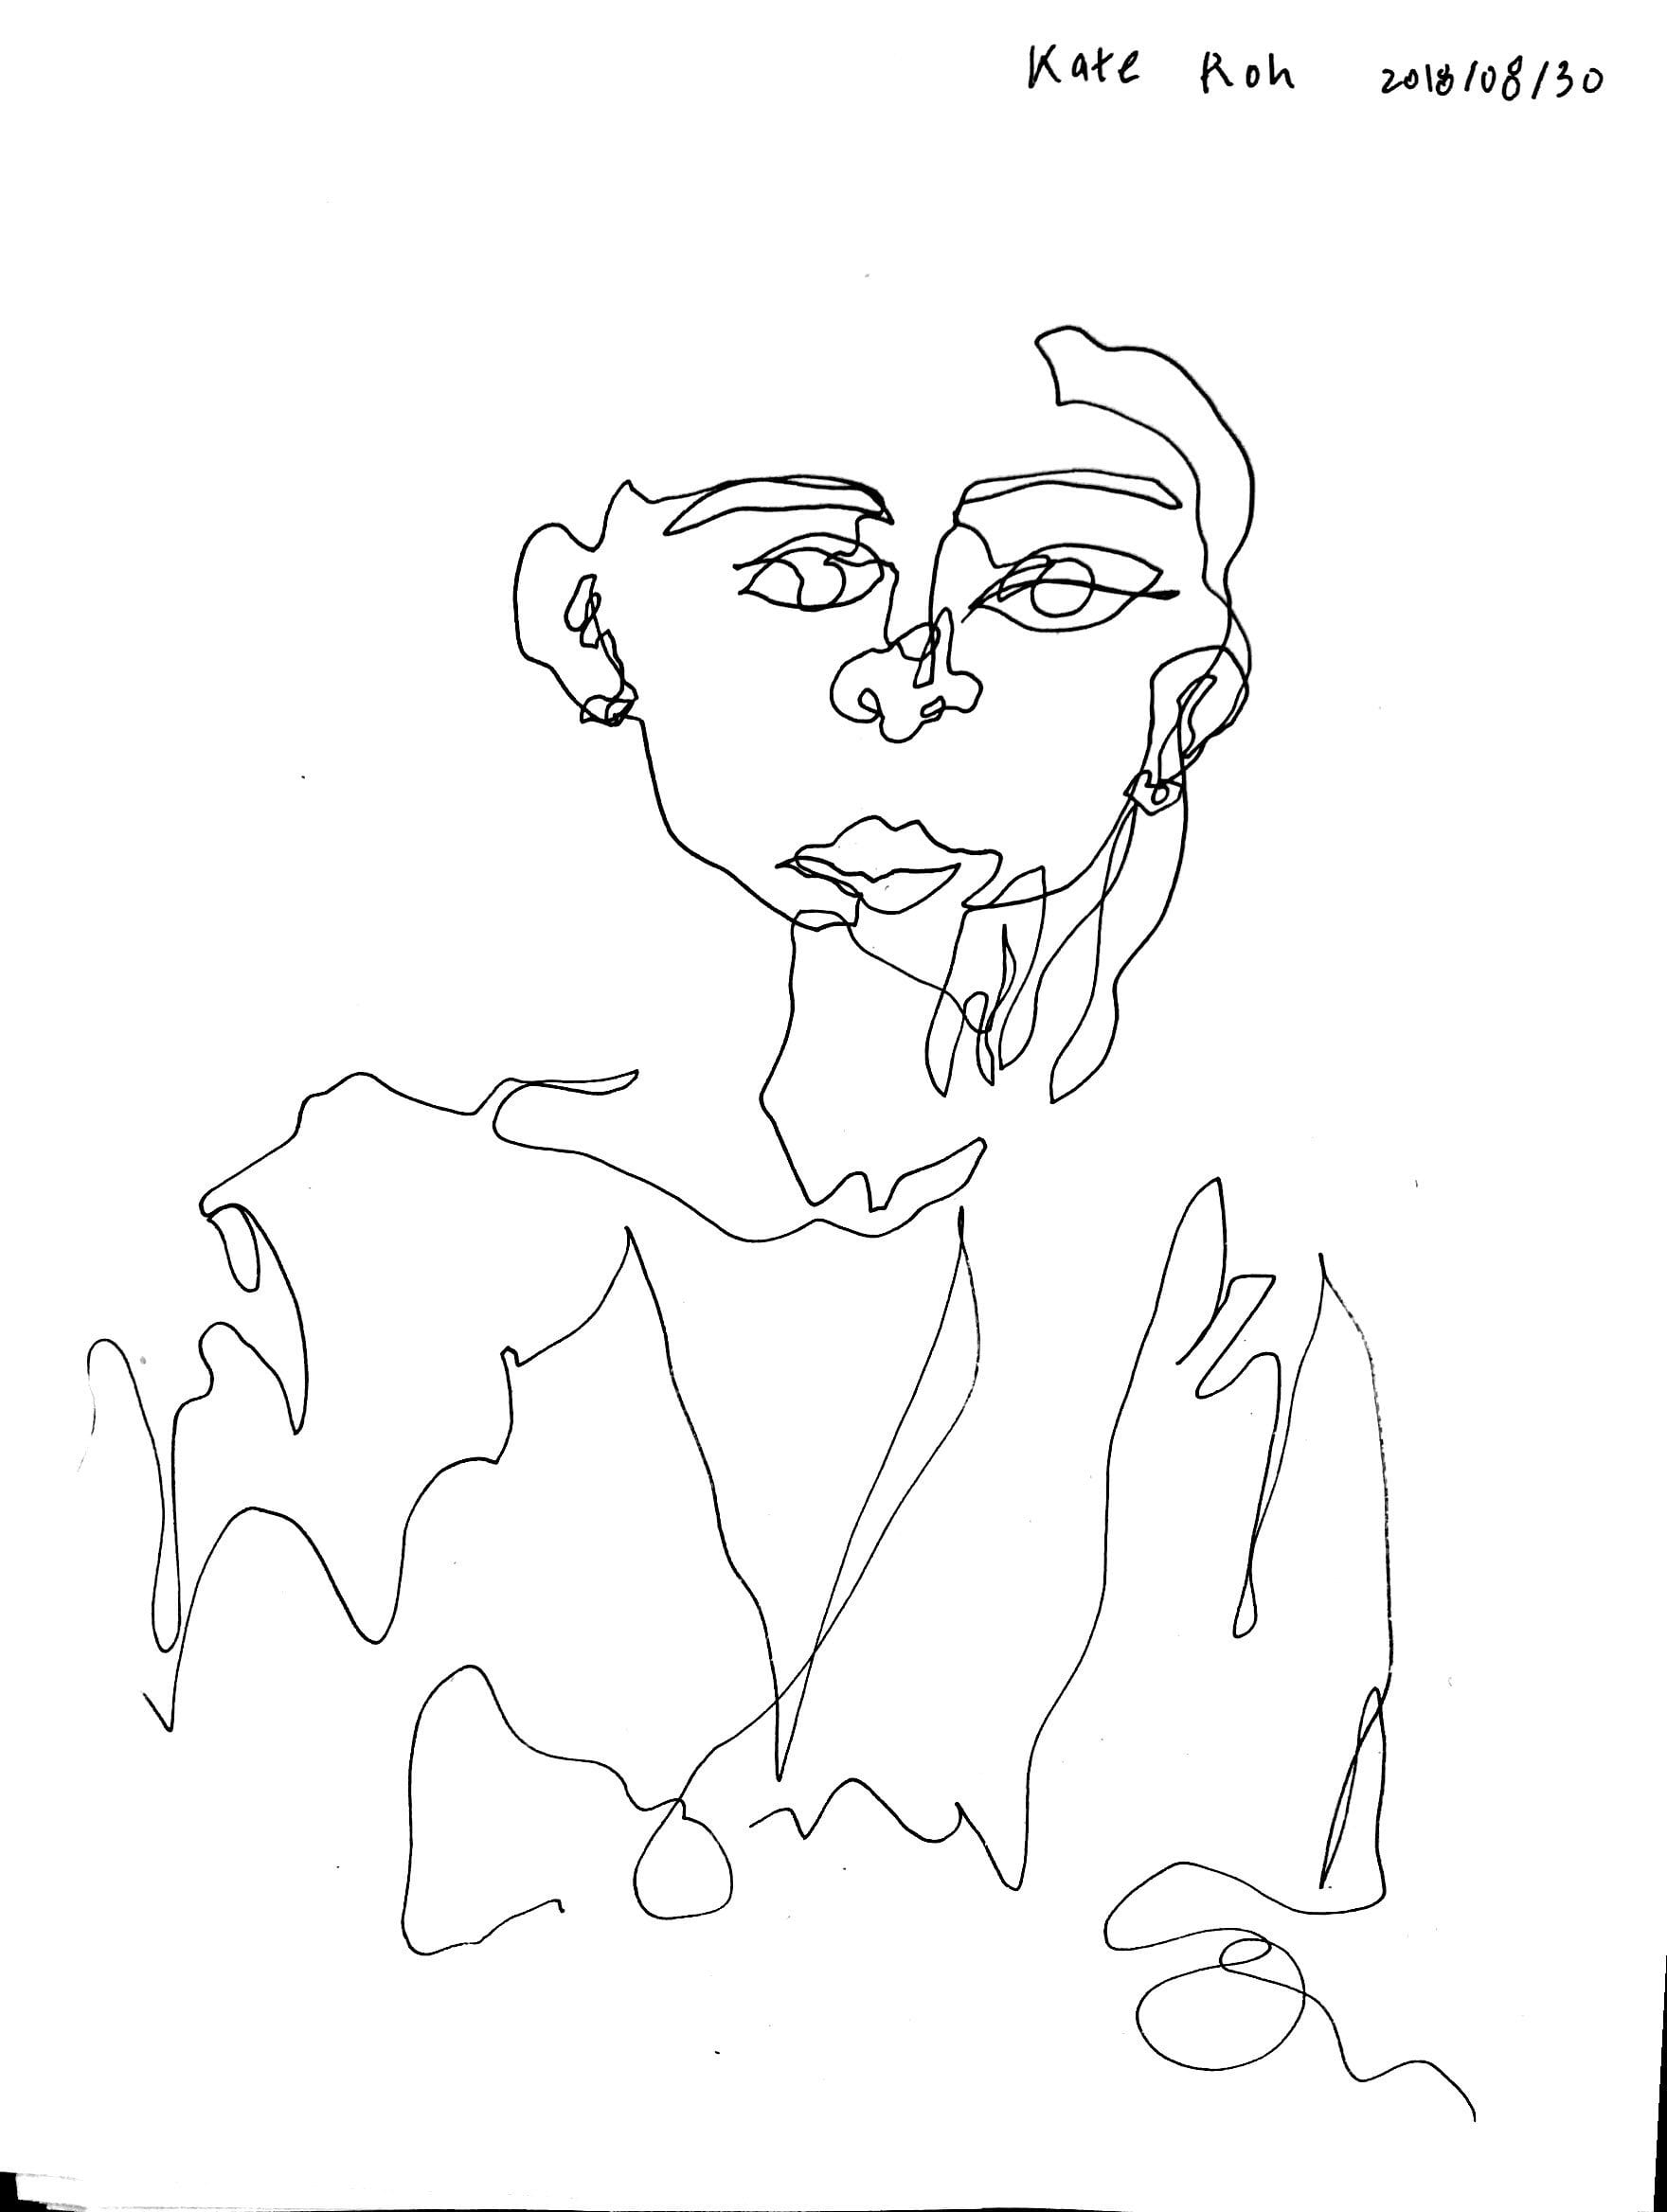 Self as Blind Contour Drawing